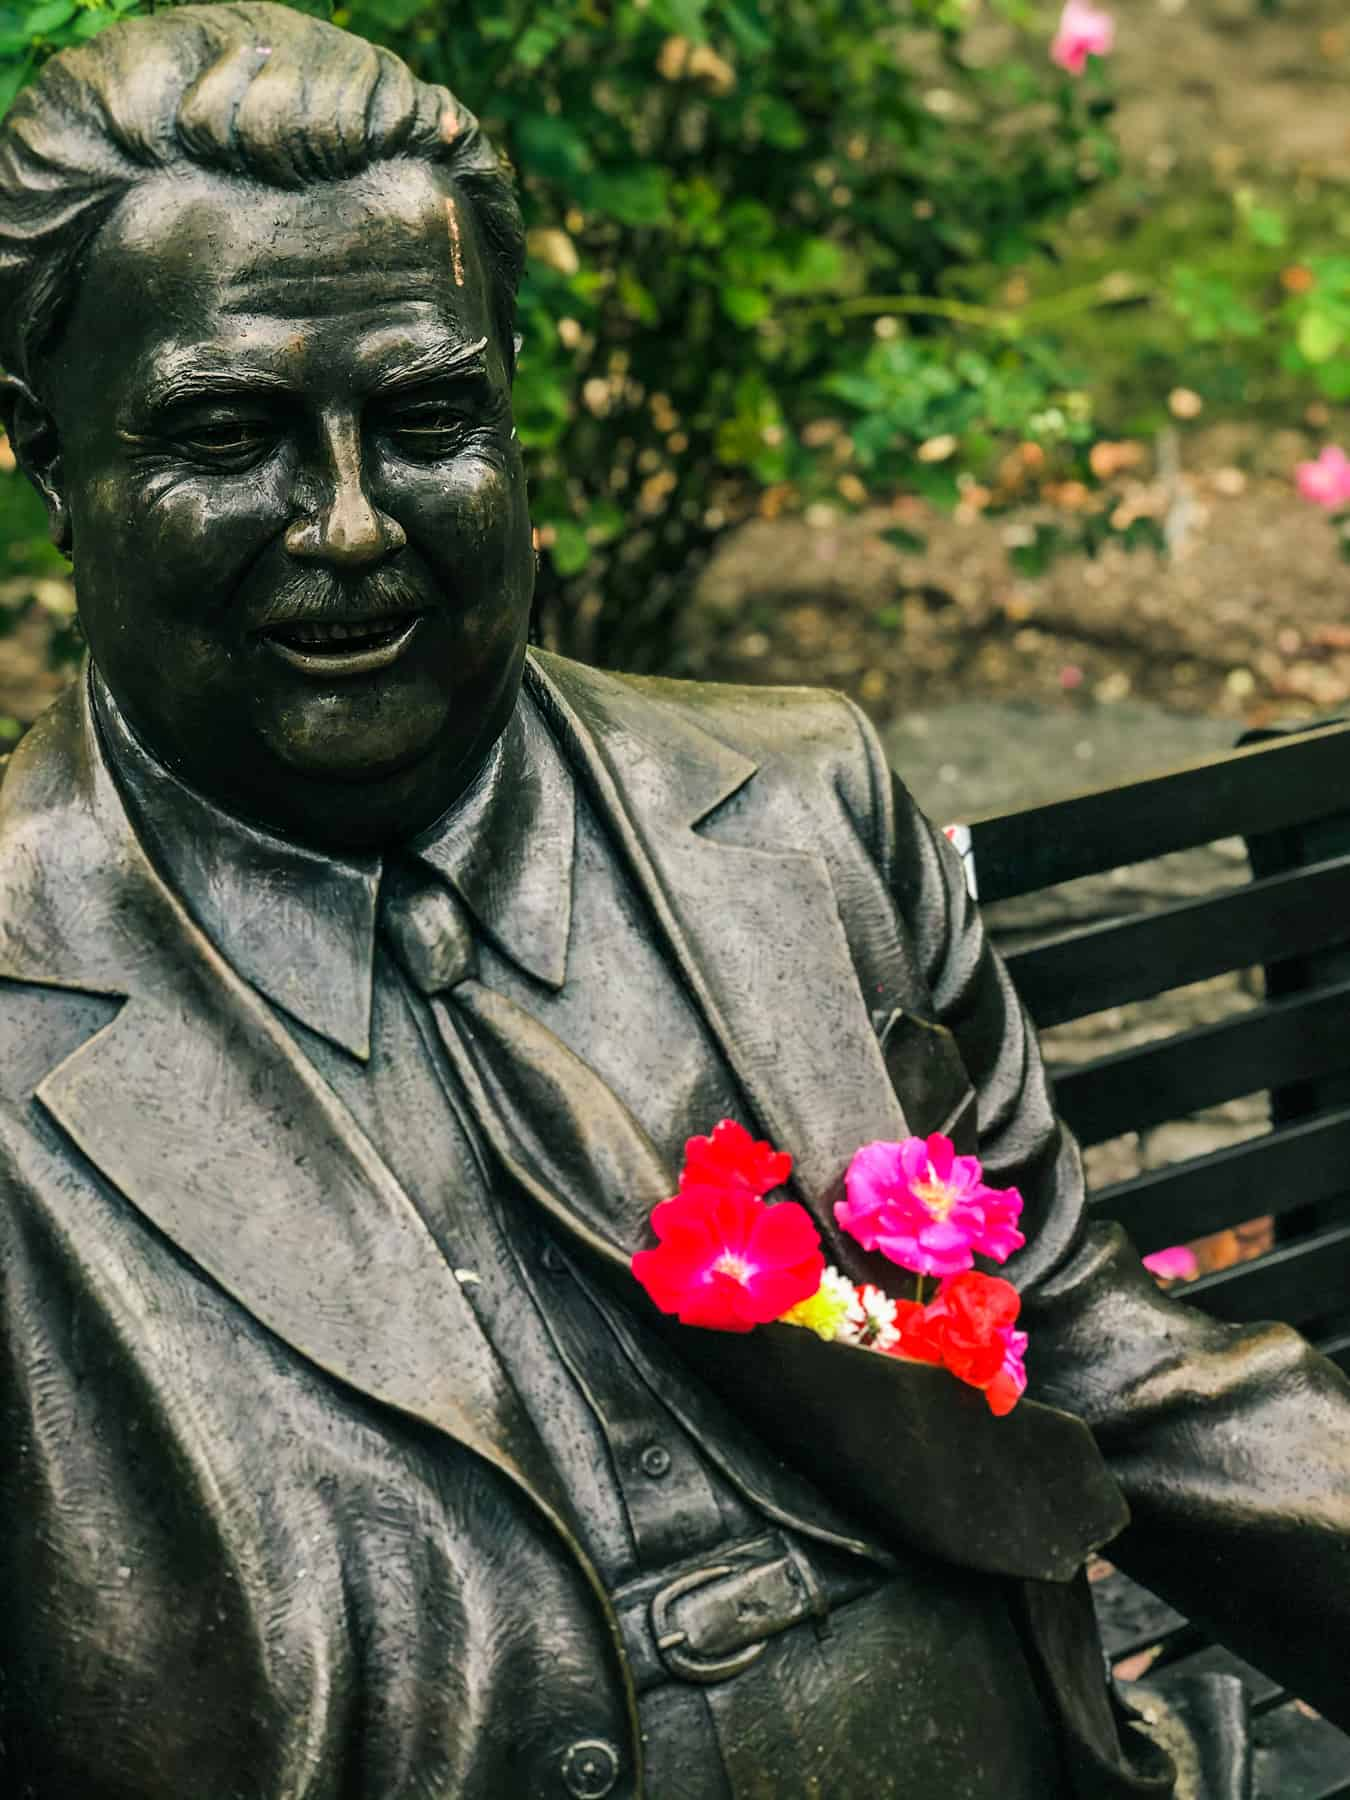 Statue of Herman Wells in Bloomington, IN, with flowers tucked into the coat pocket.